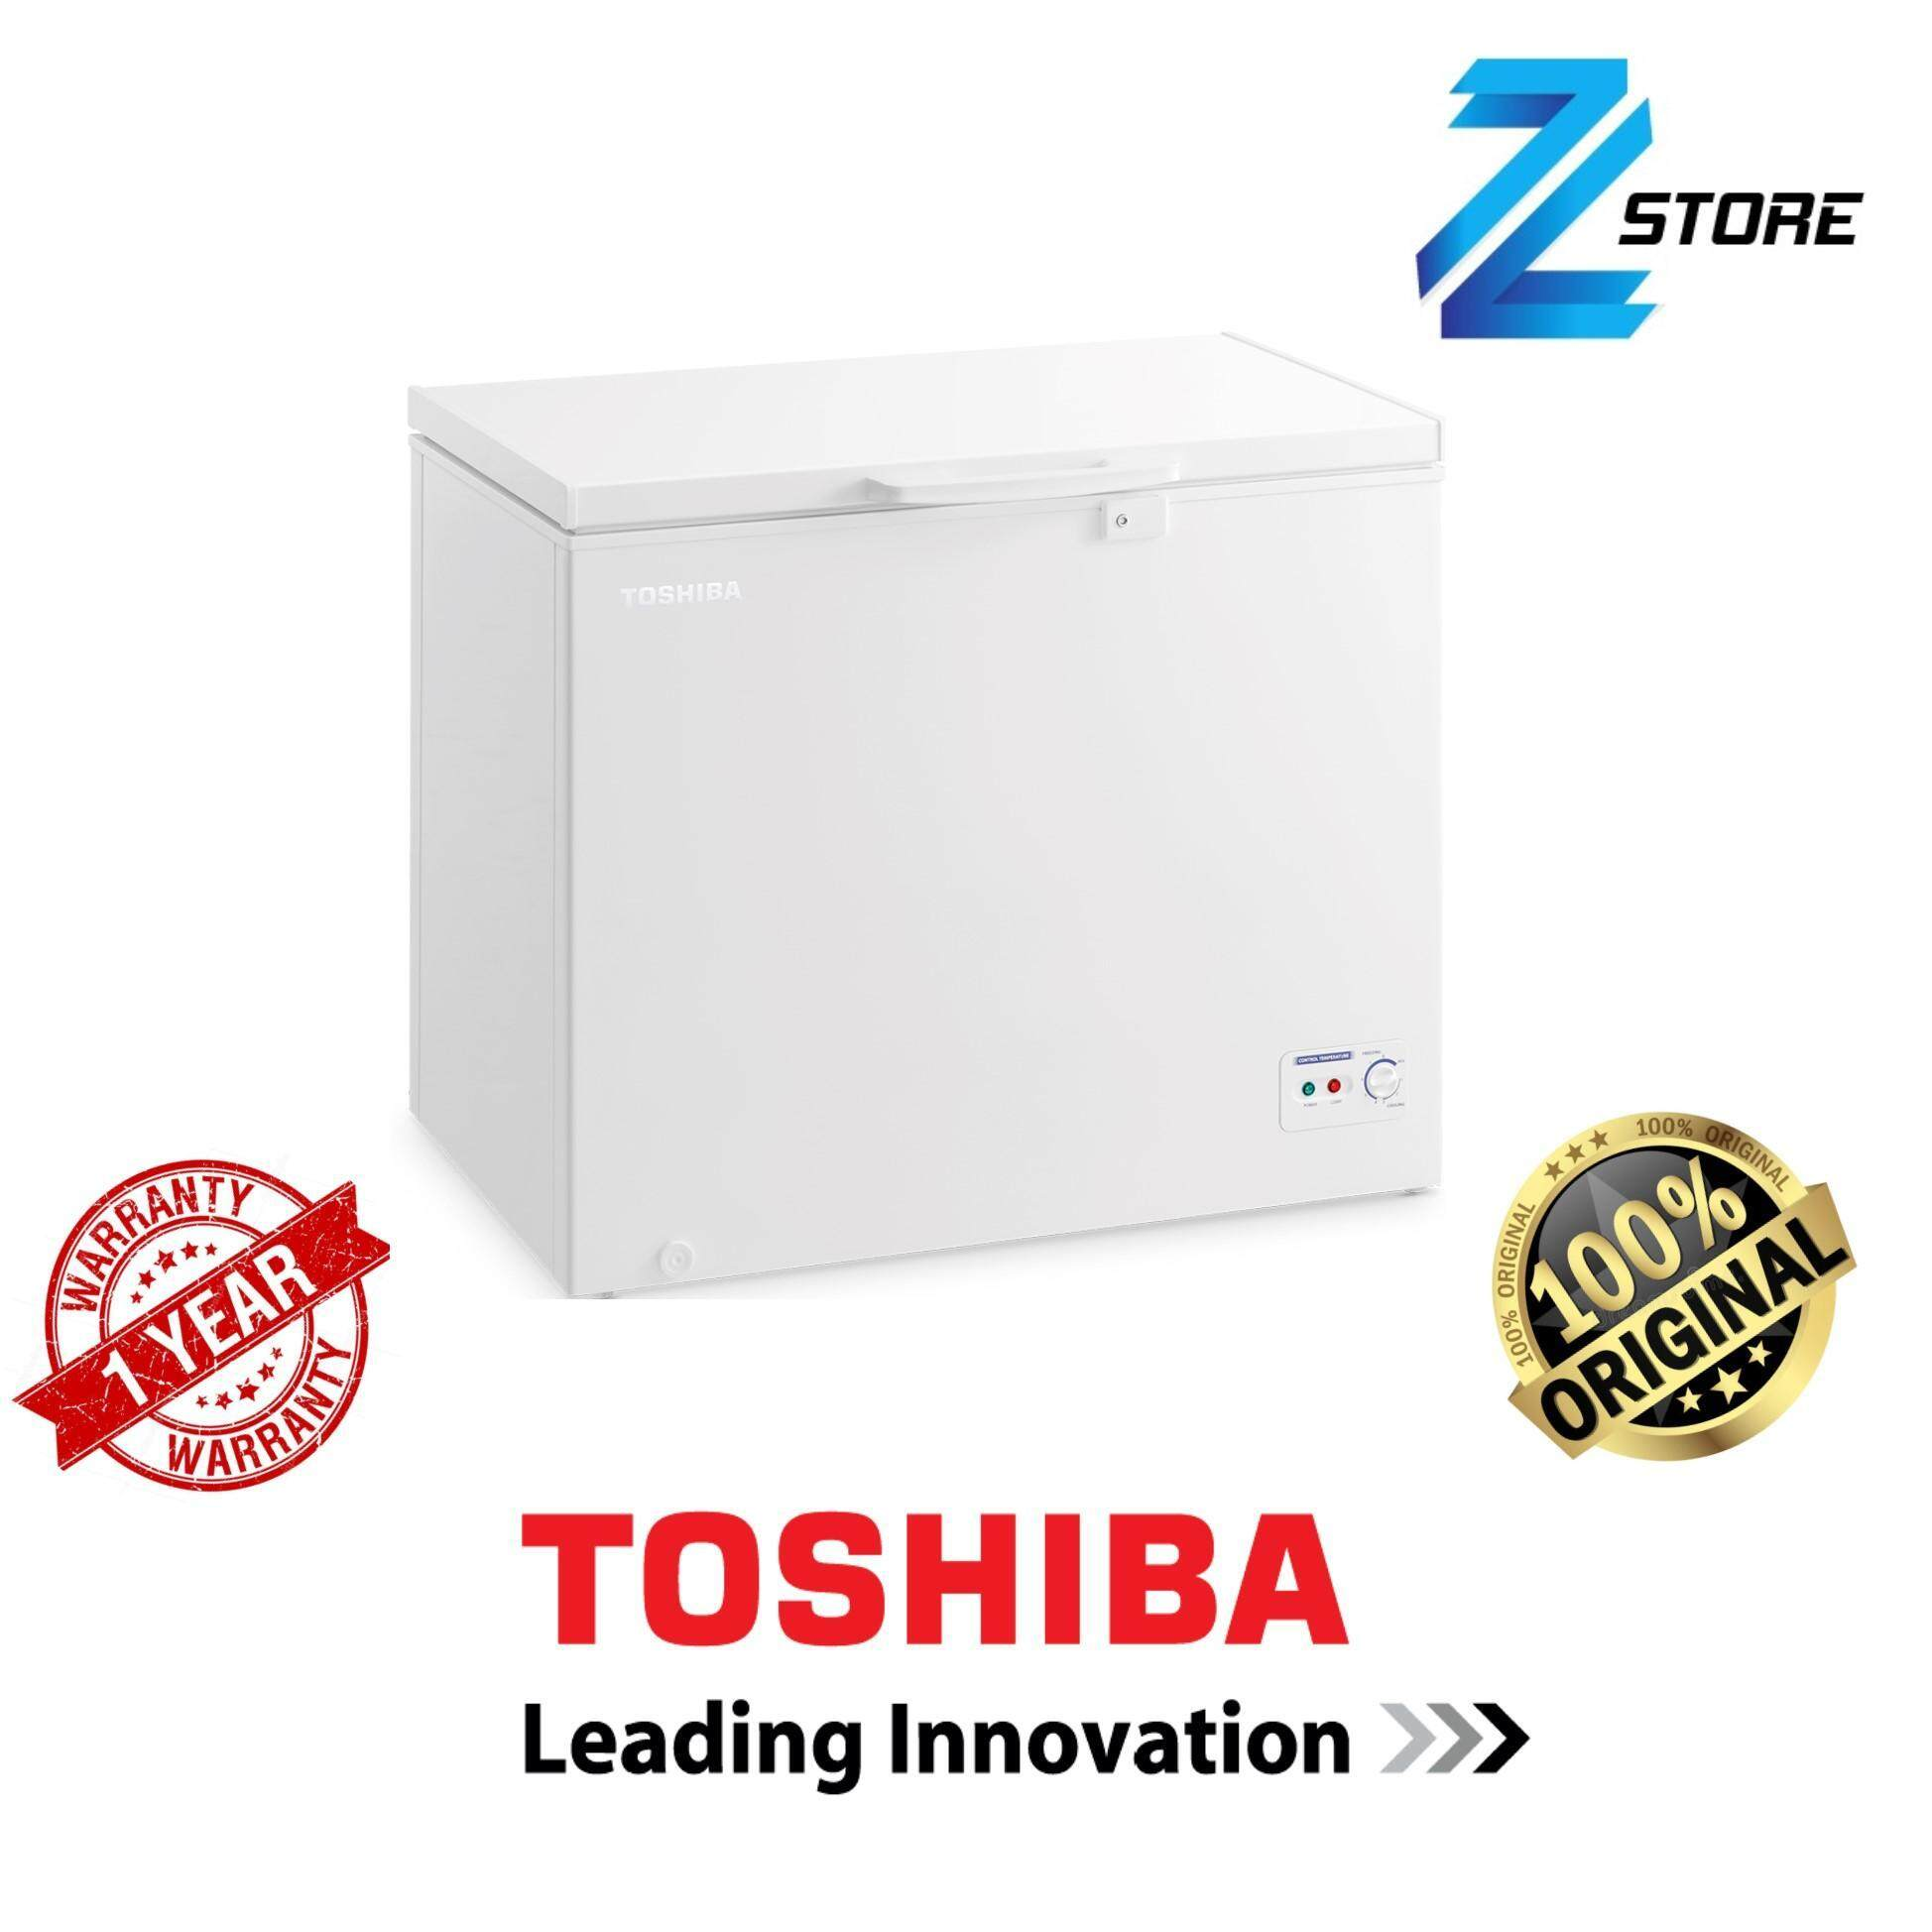 Features Toshiba Cr A295 2 In 1 Chest Freezer Dan Harga Terbaru 100 Box